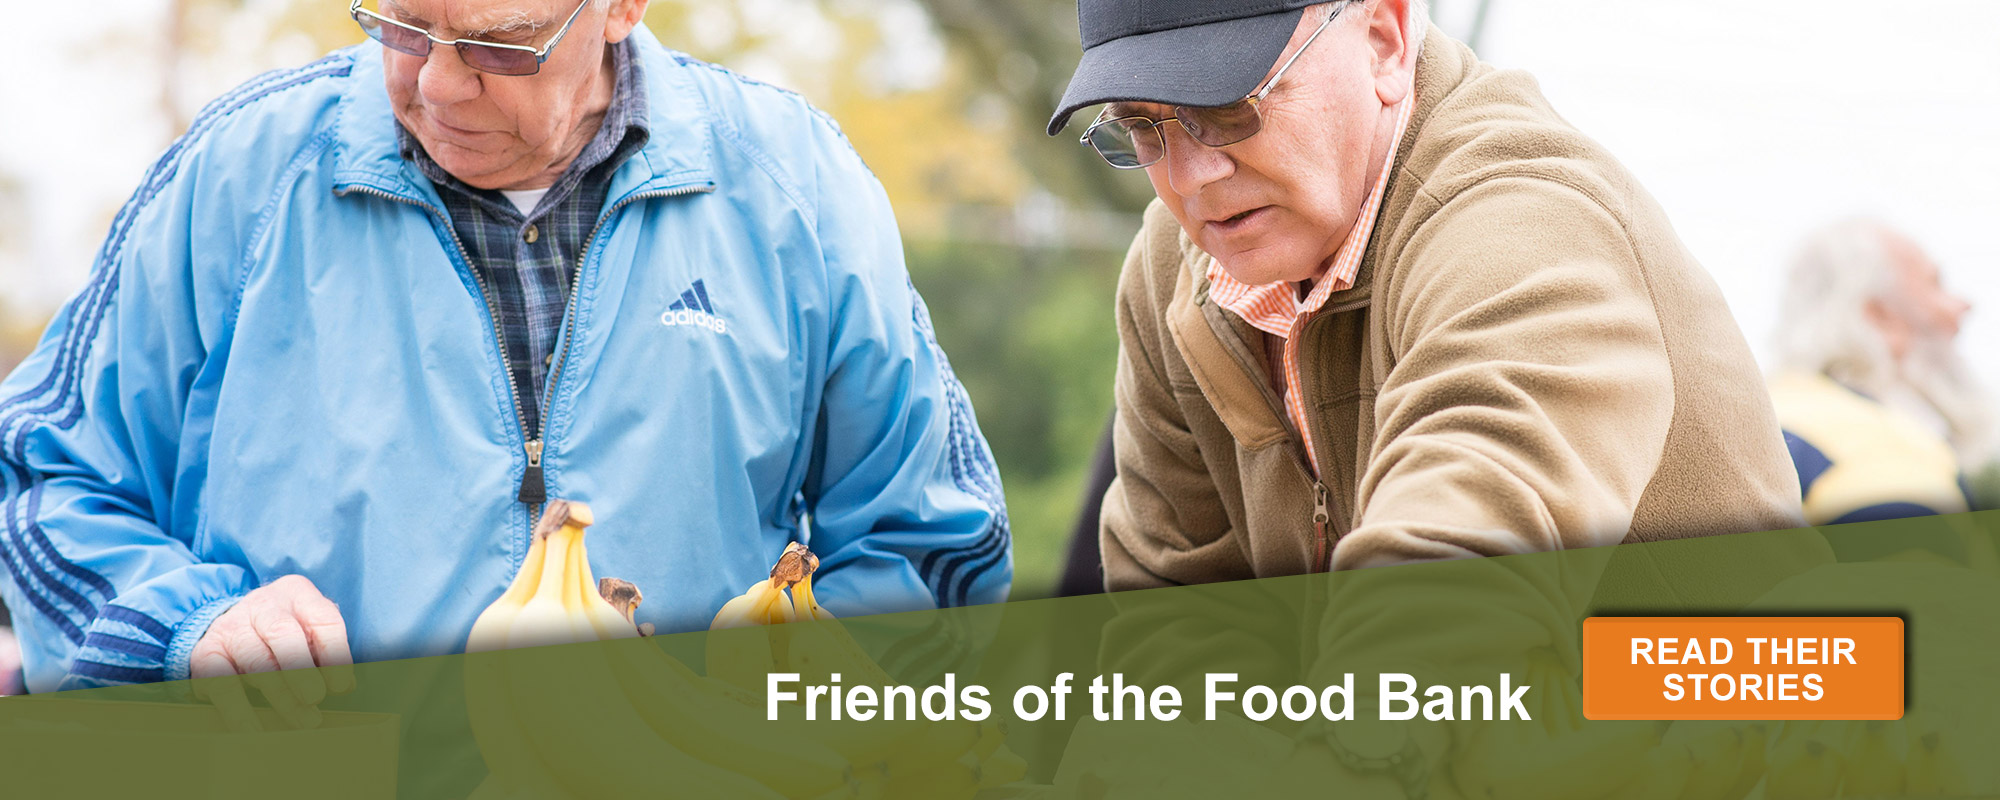 Friend of the food bank. Read their stories here.